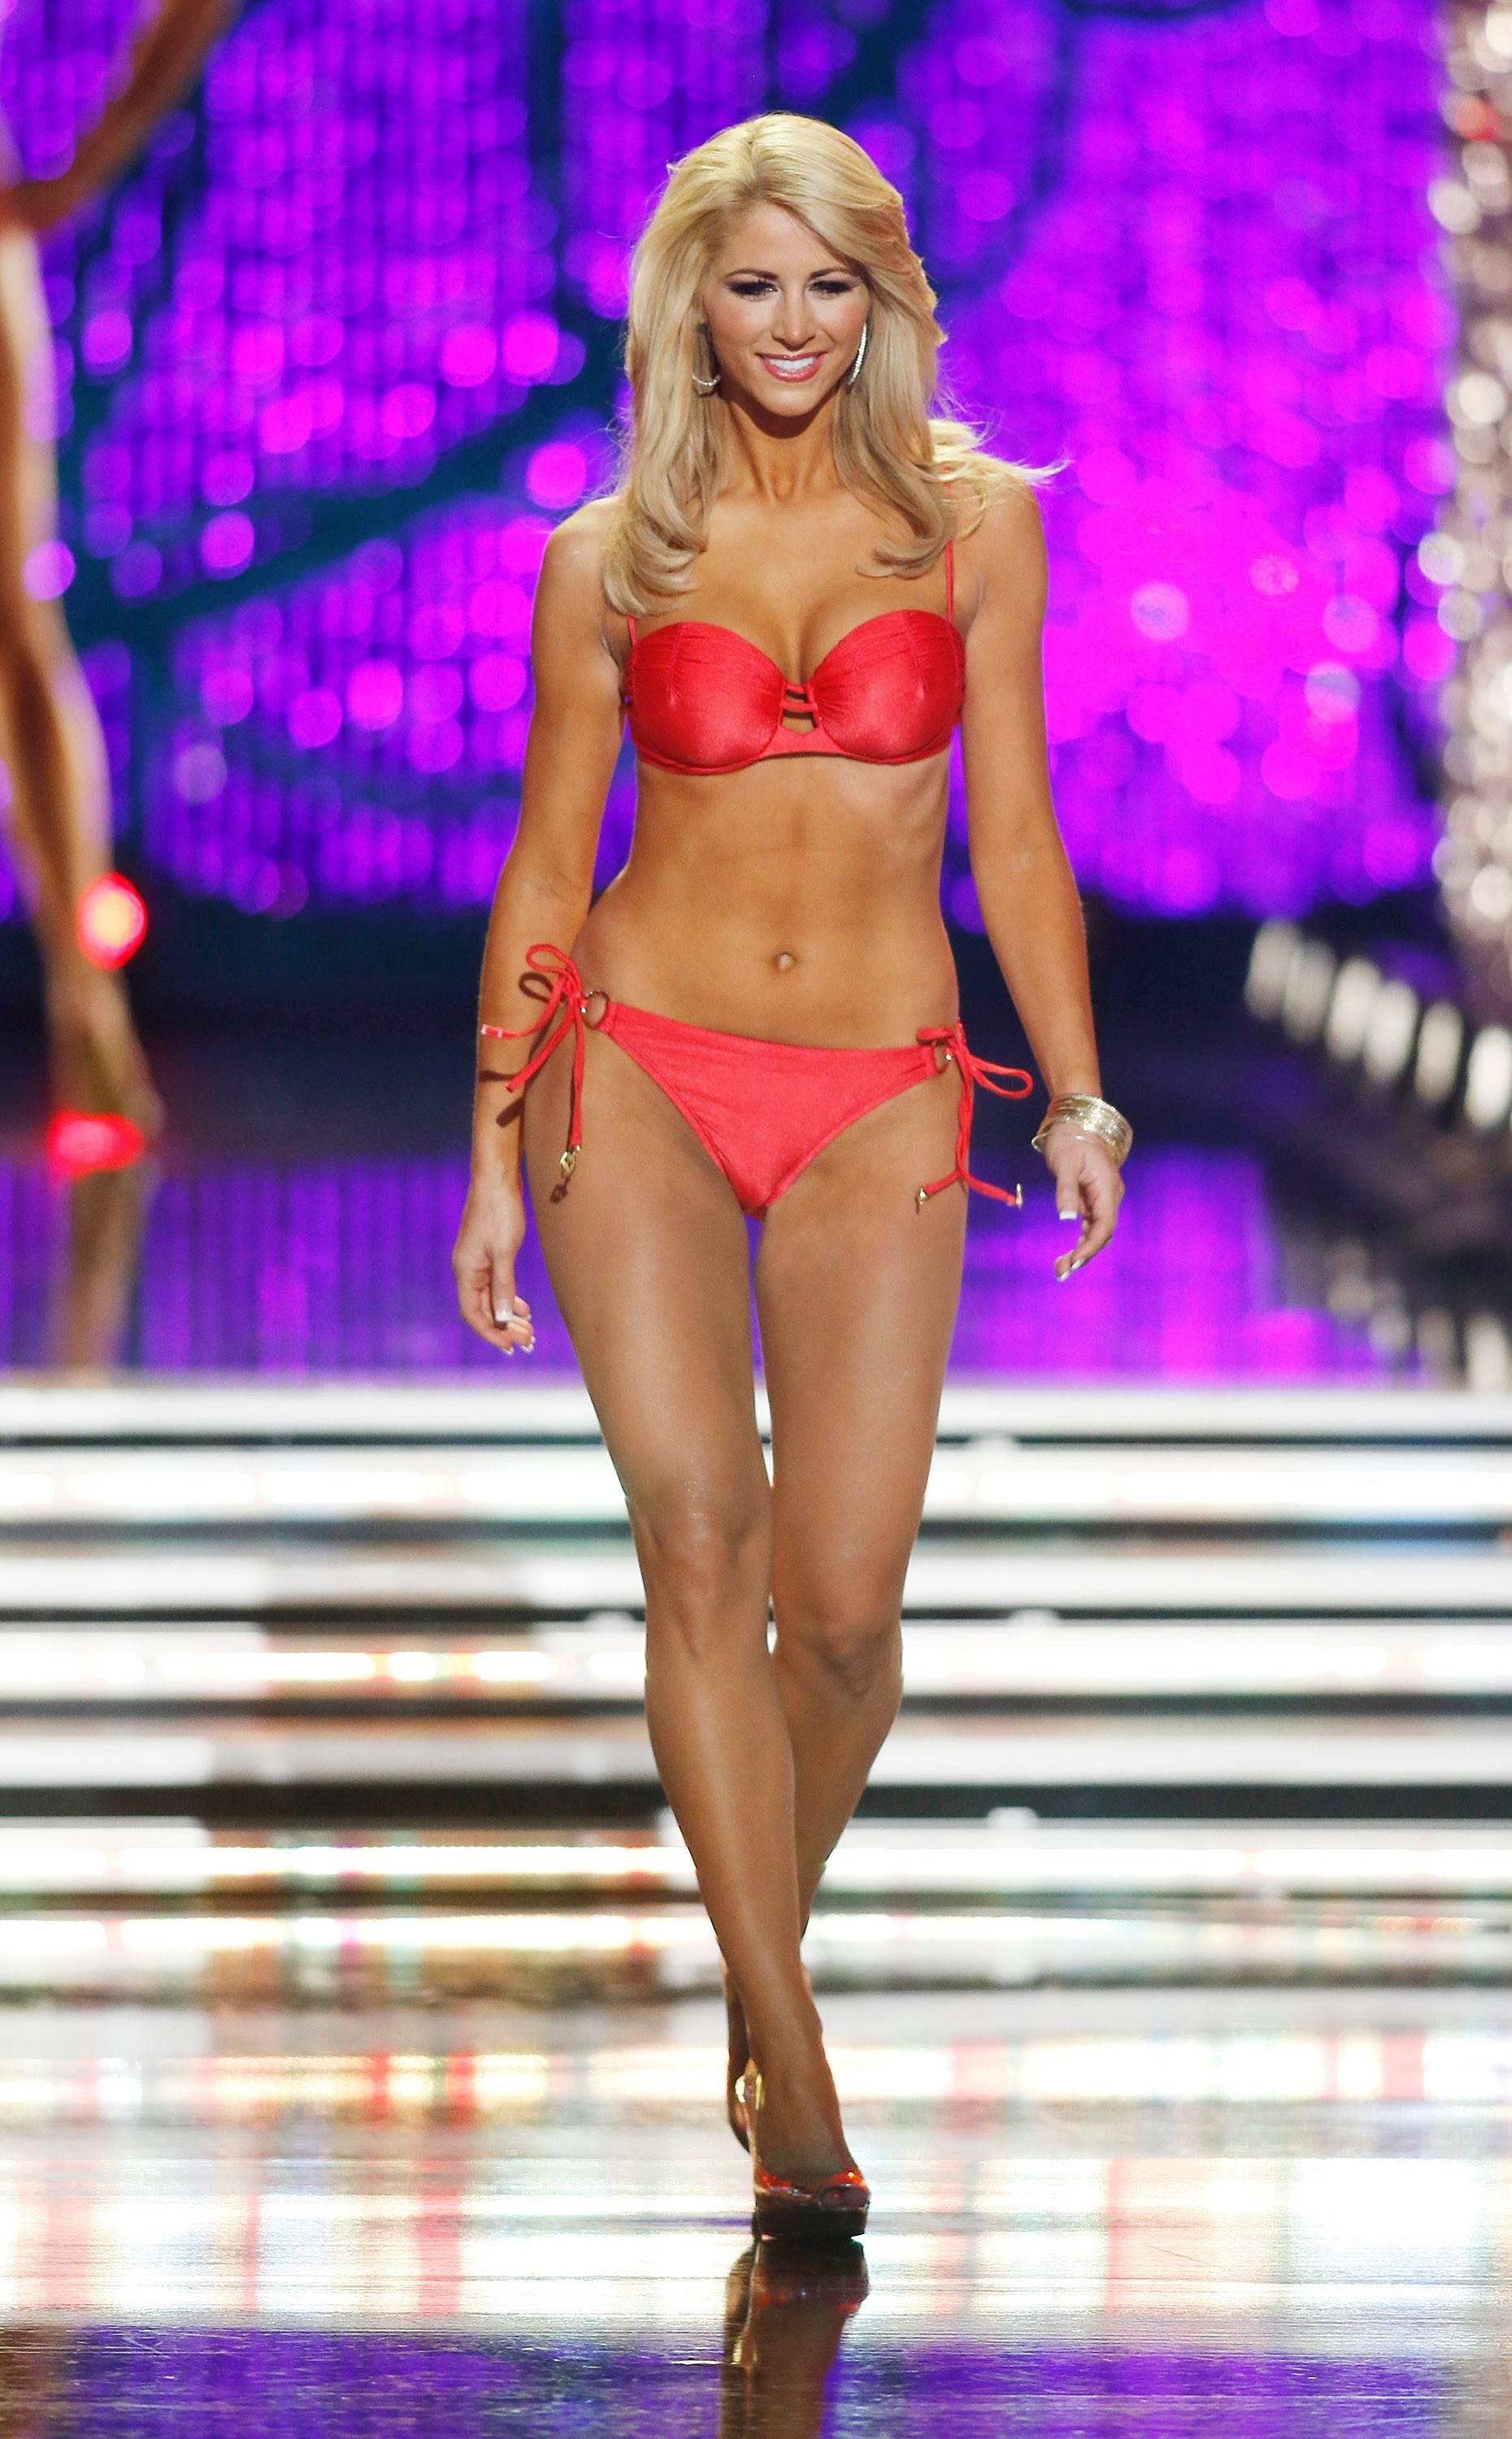 Miss Florida Laura McKeeman competes in the swimsuit portion of the Miss America 2013 pageant on Saturday, Jan. 12, 2013, in Las Vegas.